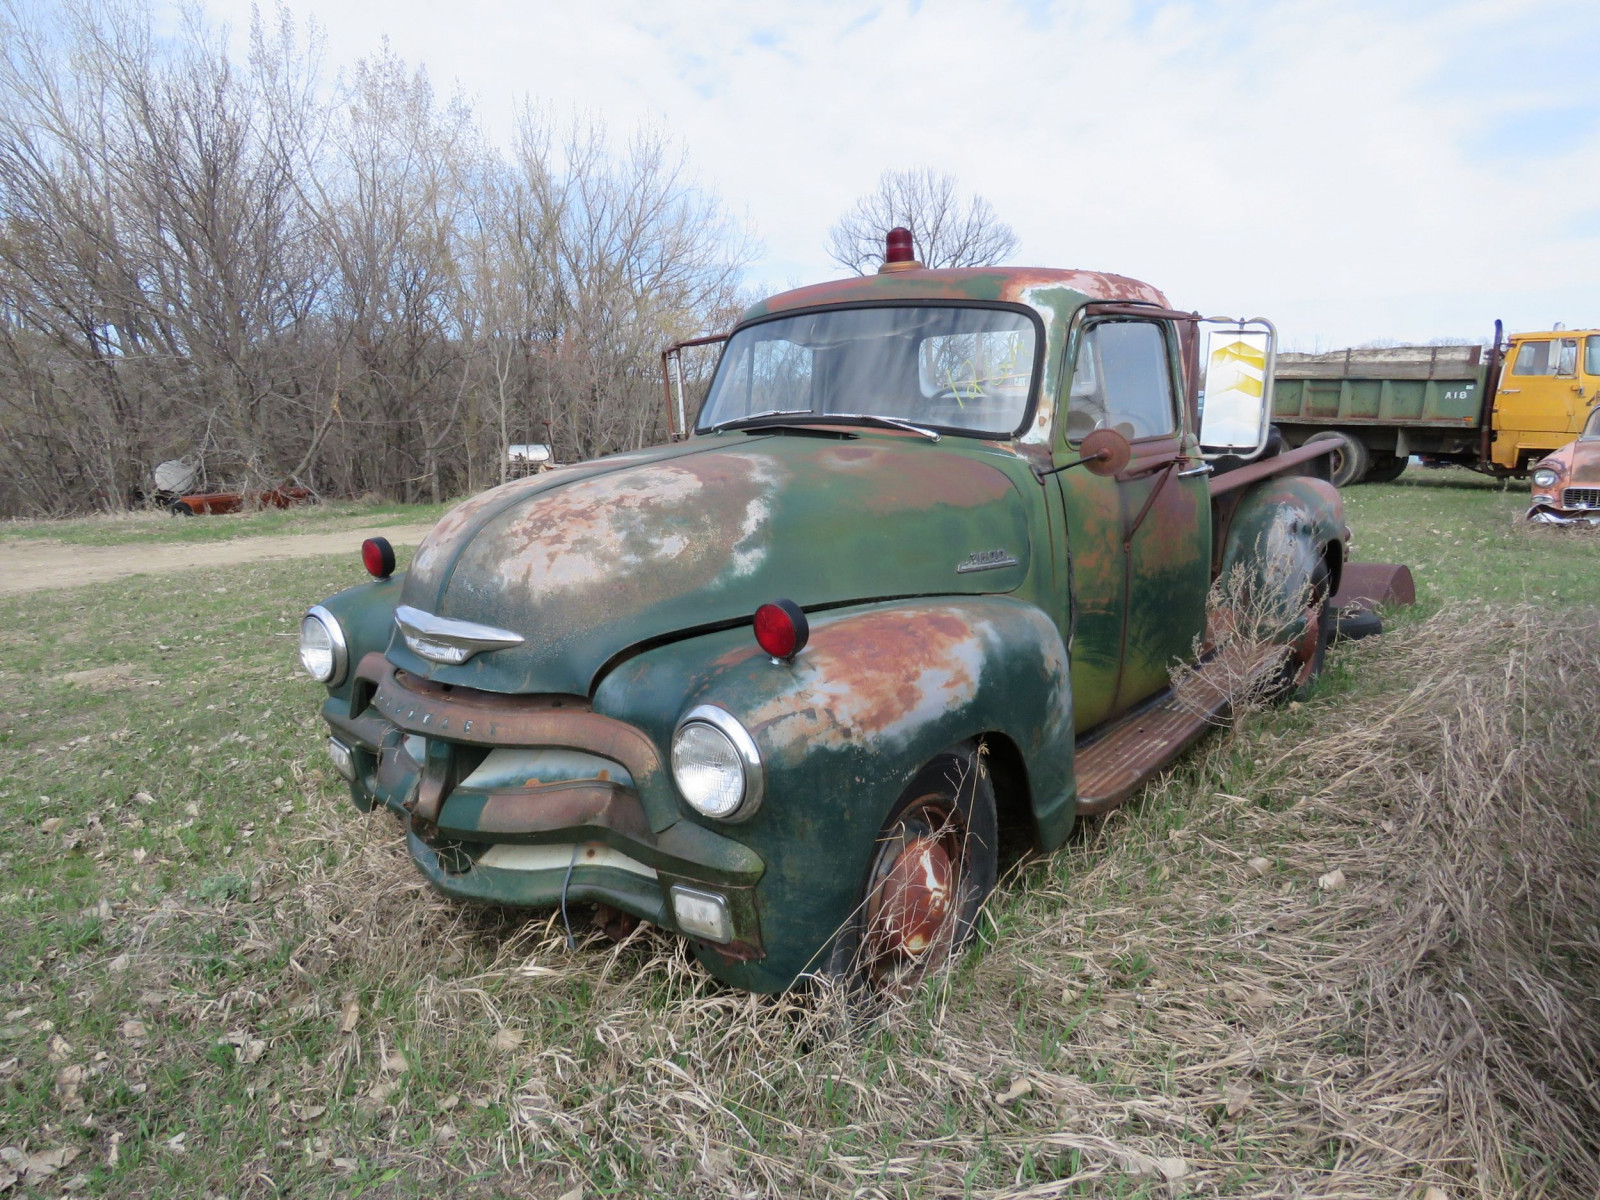 1954 Chevrolet Step side Pickup J54J028177 - Image 1